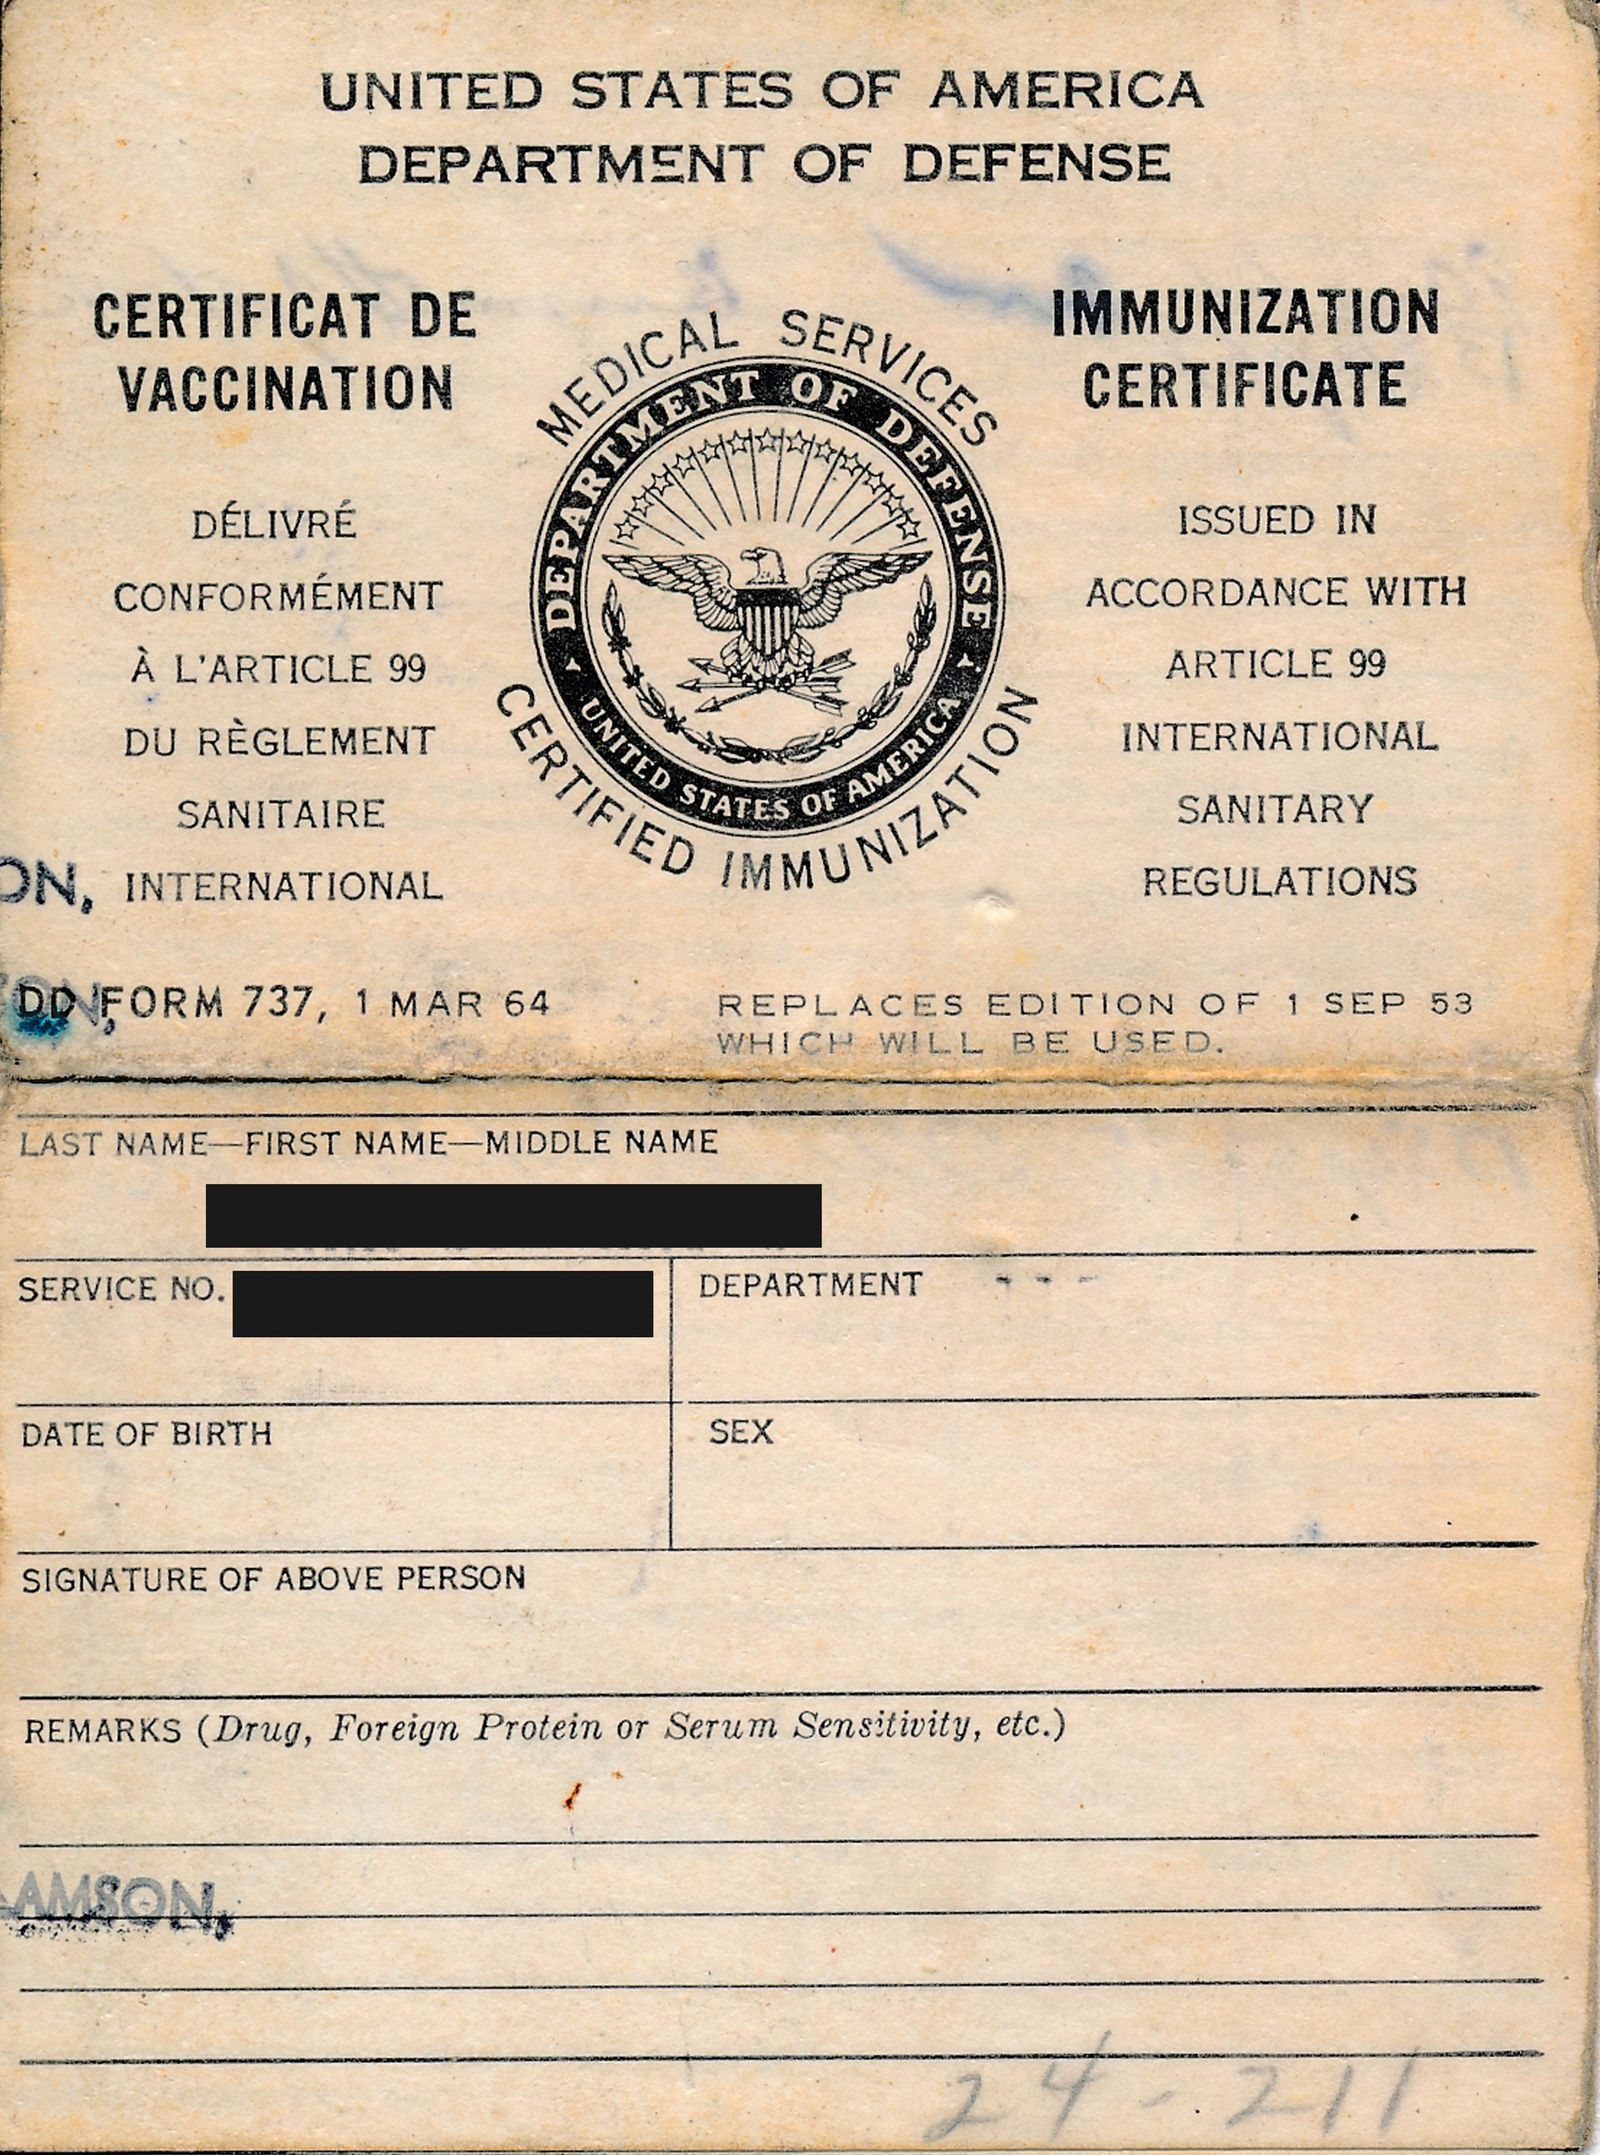 Immunization Certificate From US Department Of Defense